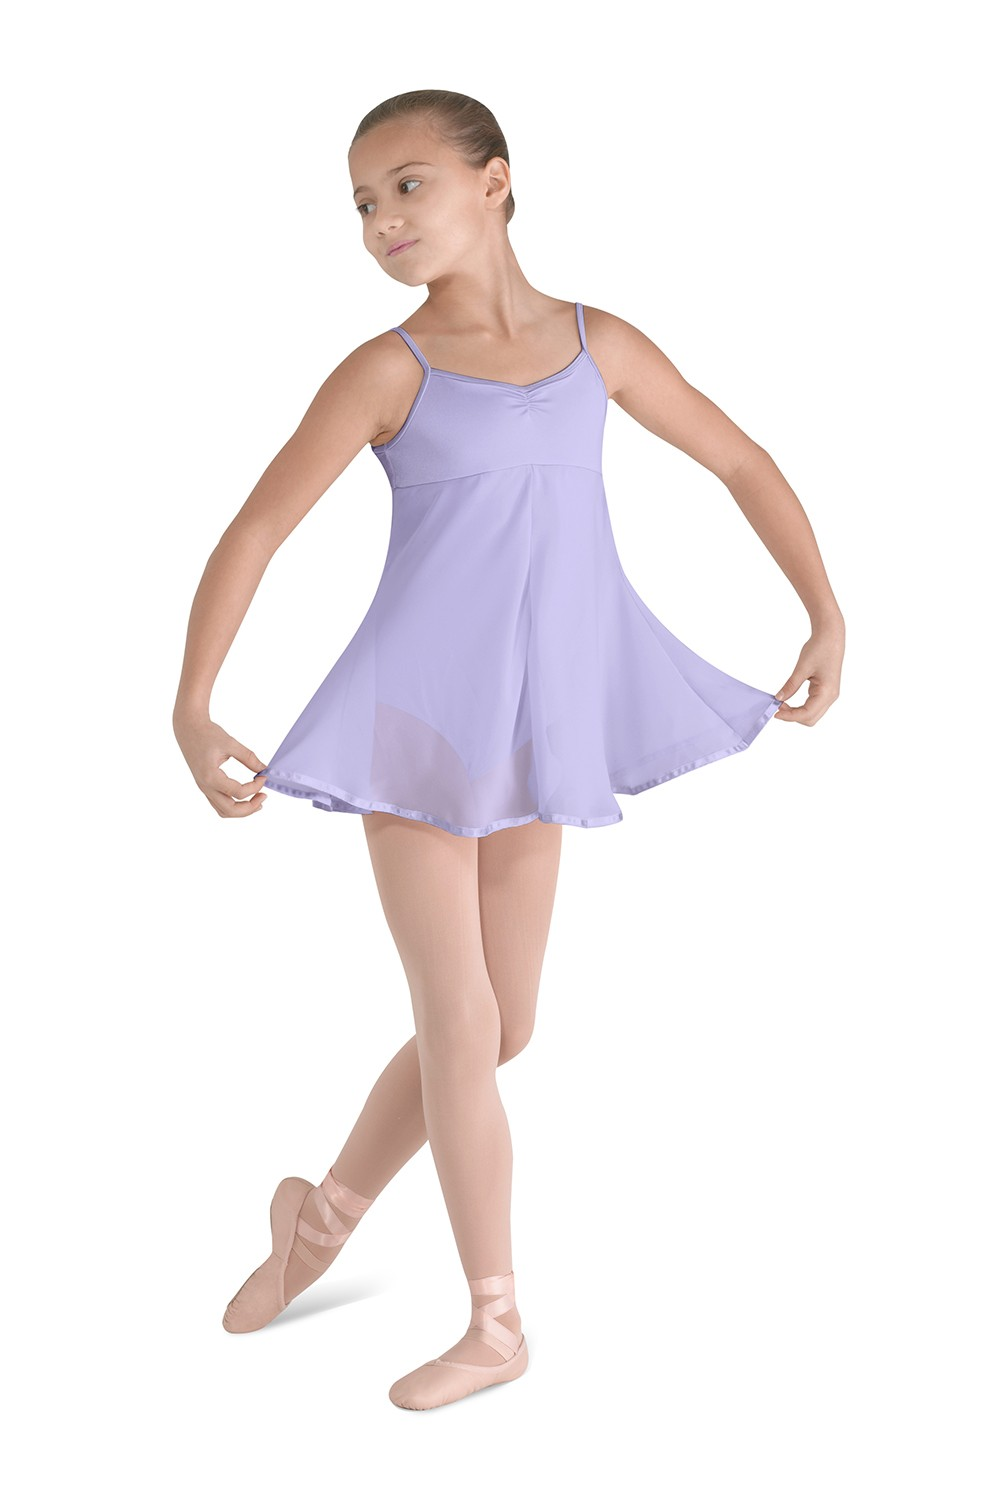 Camisole Dress Leotard Children's Dance Leotards